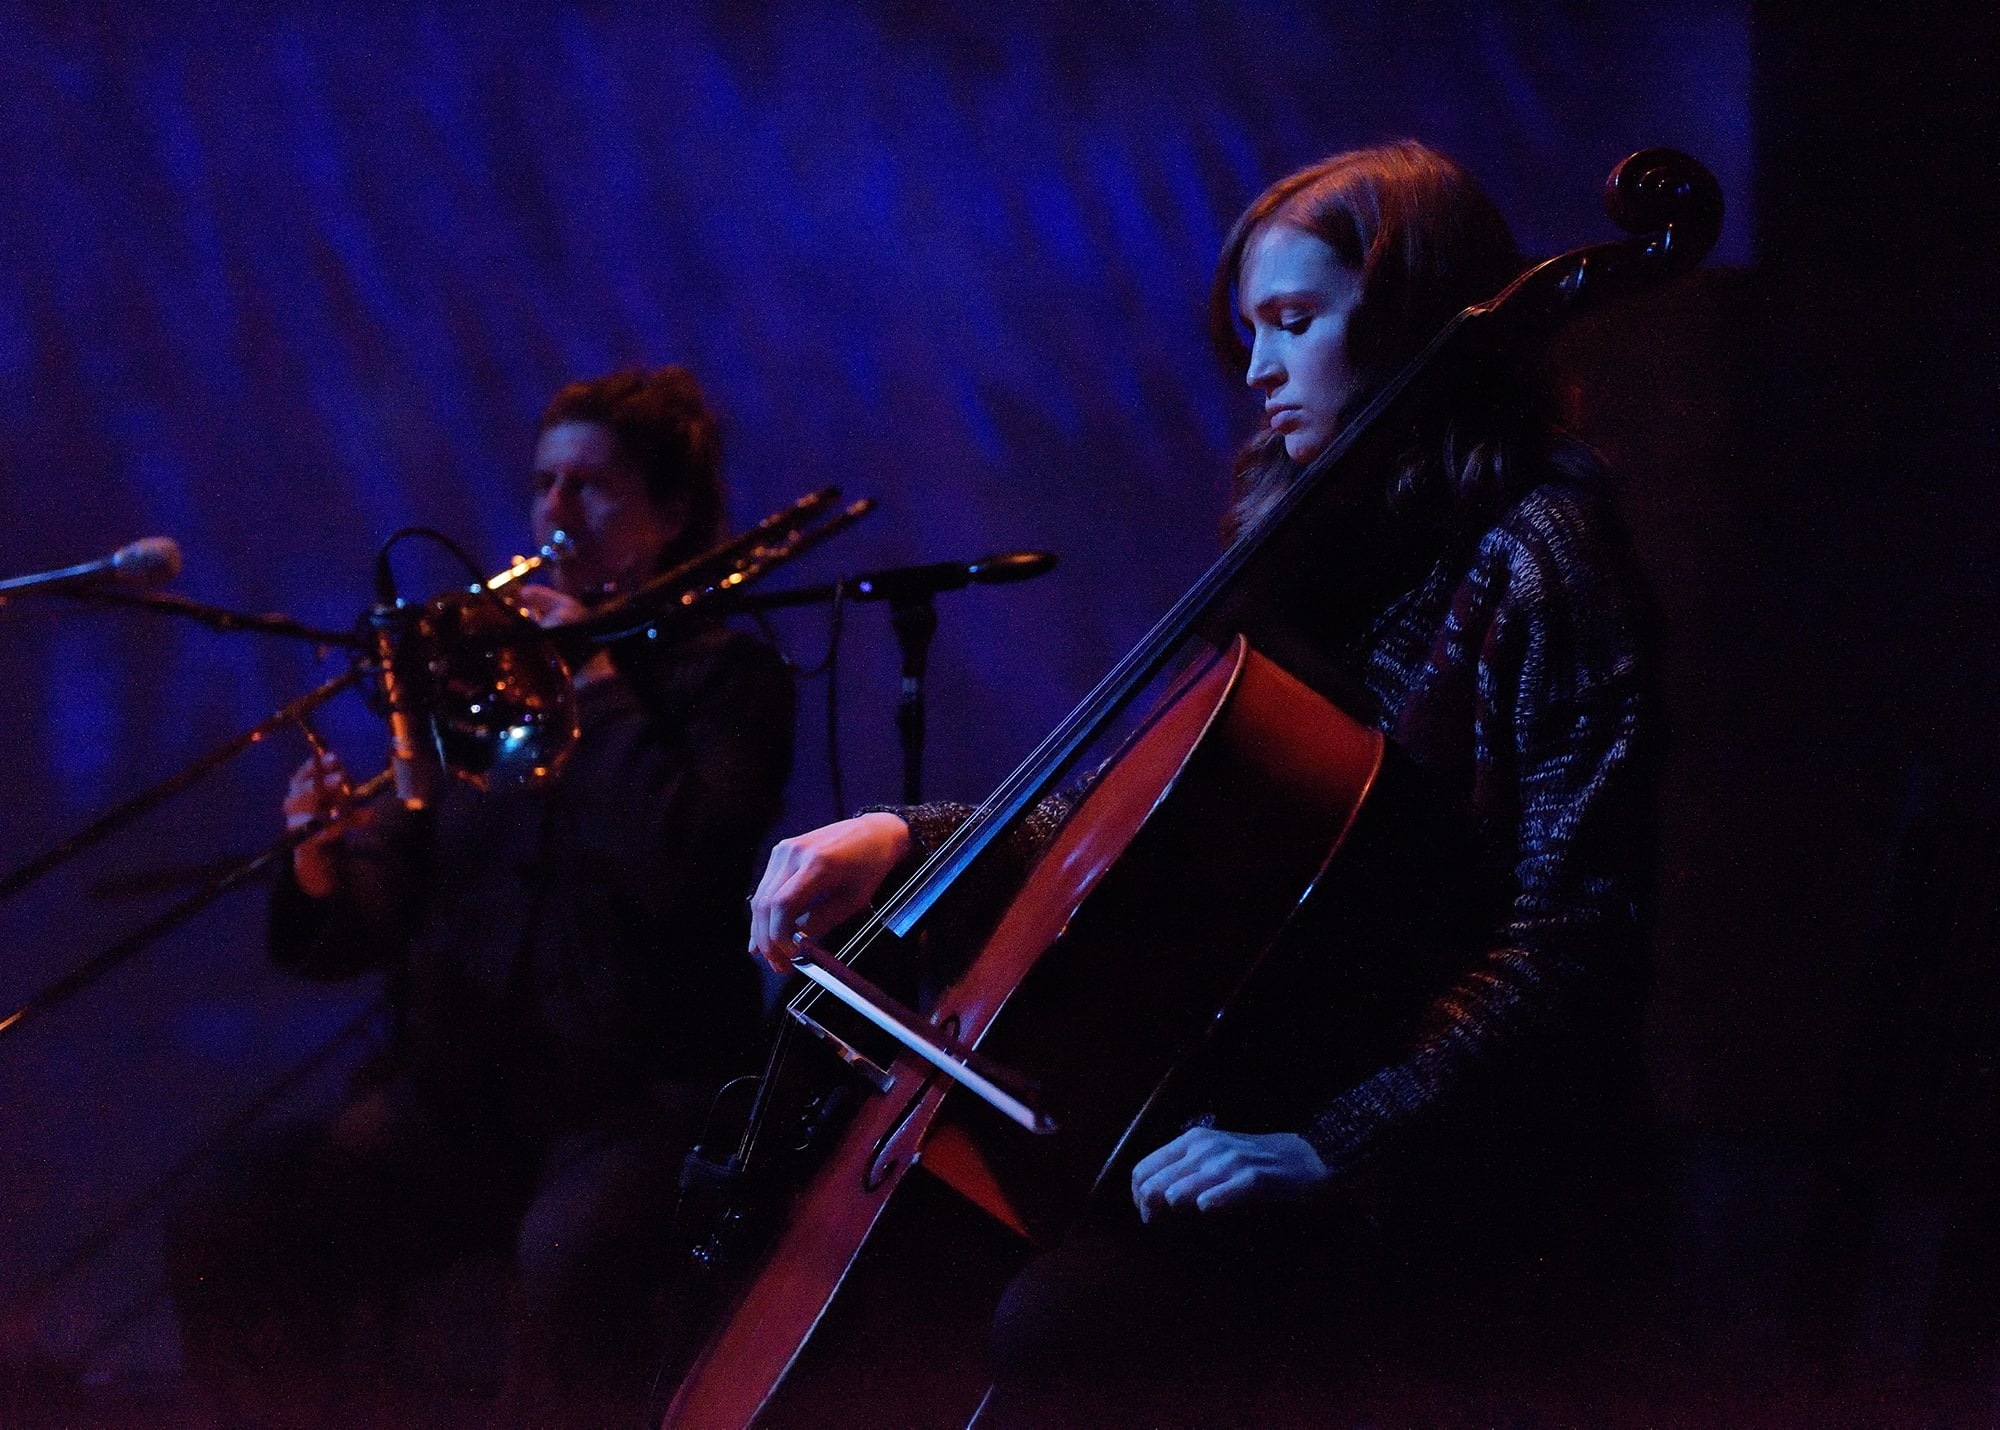 Jen Baker and Mariel Roberts performing Randy Gibson's <em>Apparitions of The Four Pillars in The Midwinter Starfield under The Astral 789 Duet</em> at the 2015 Avant Music Festival